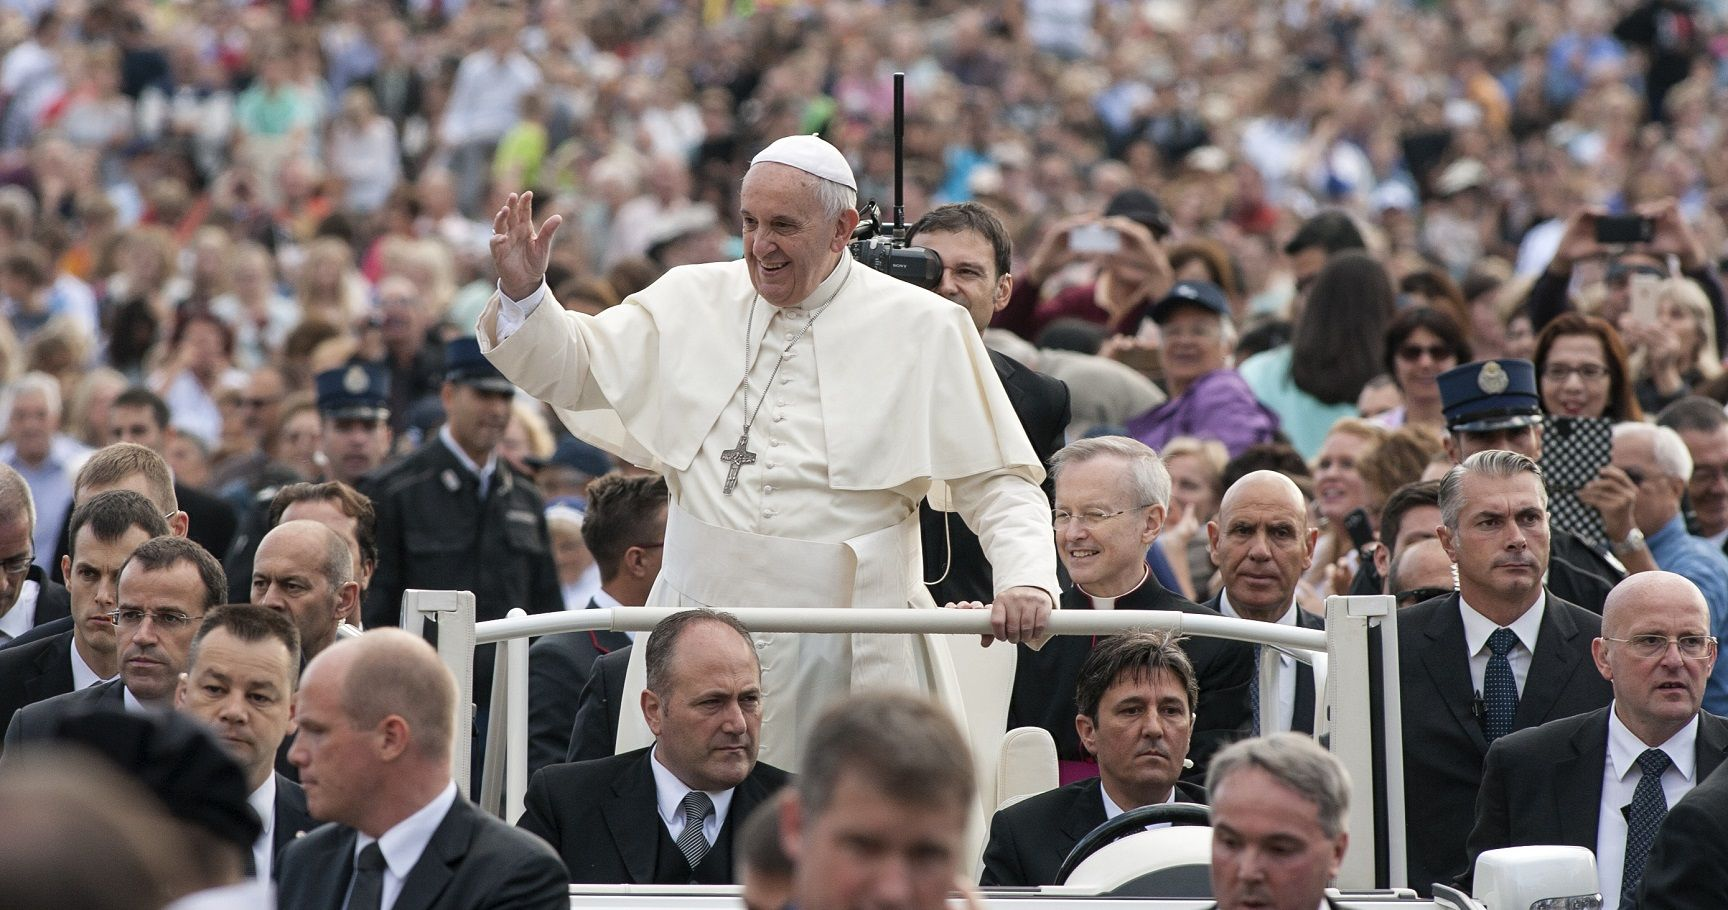 15 Surprising Things You Didn't Know About Pope Francis